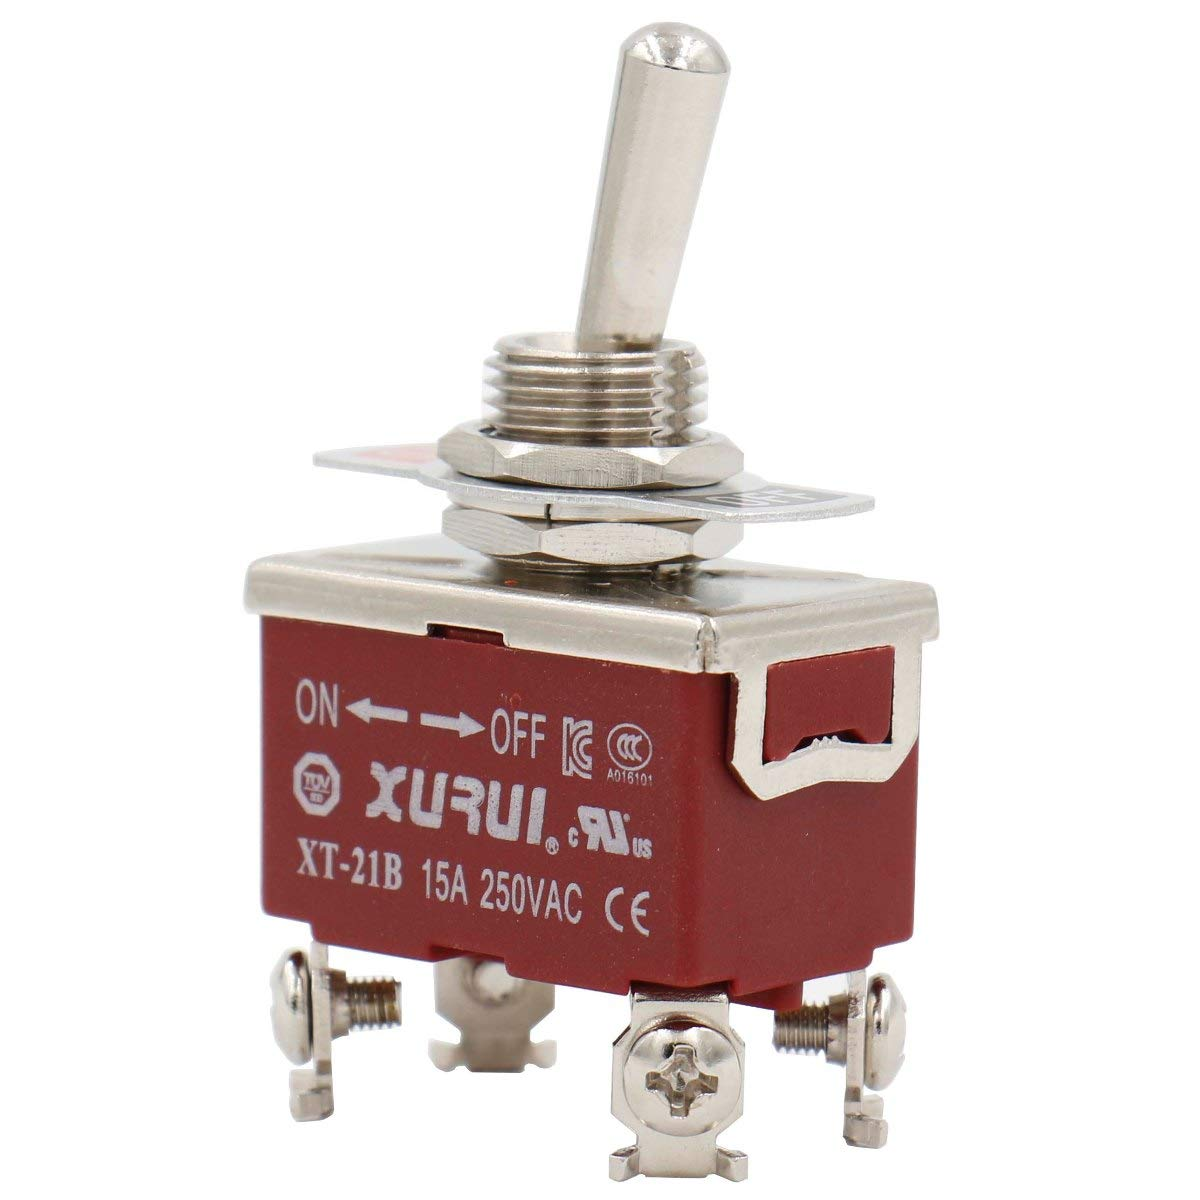 Baomain Toggle Switch DPST ON/Off 2 Position 250VAC 15A 1/2